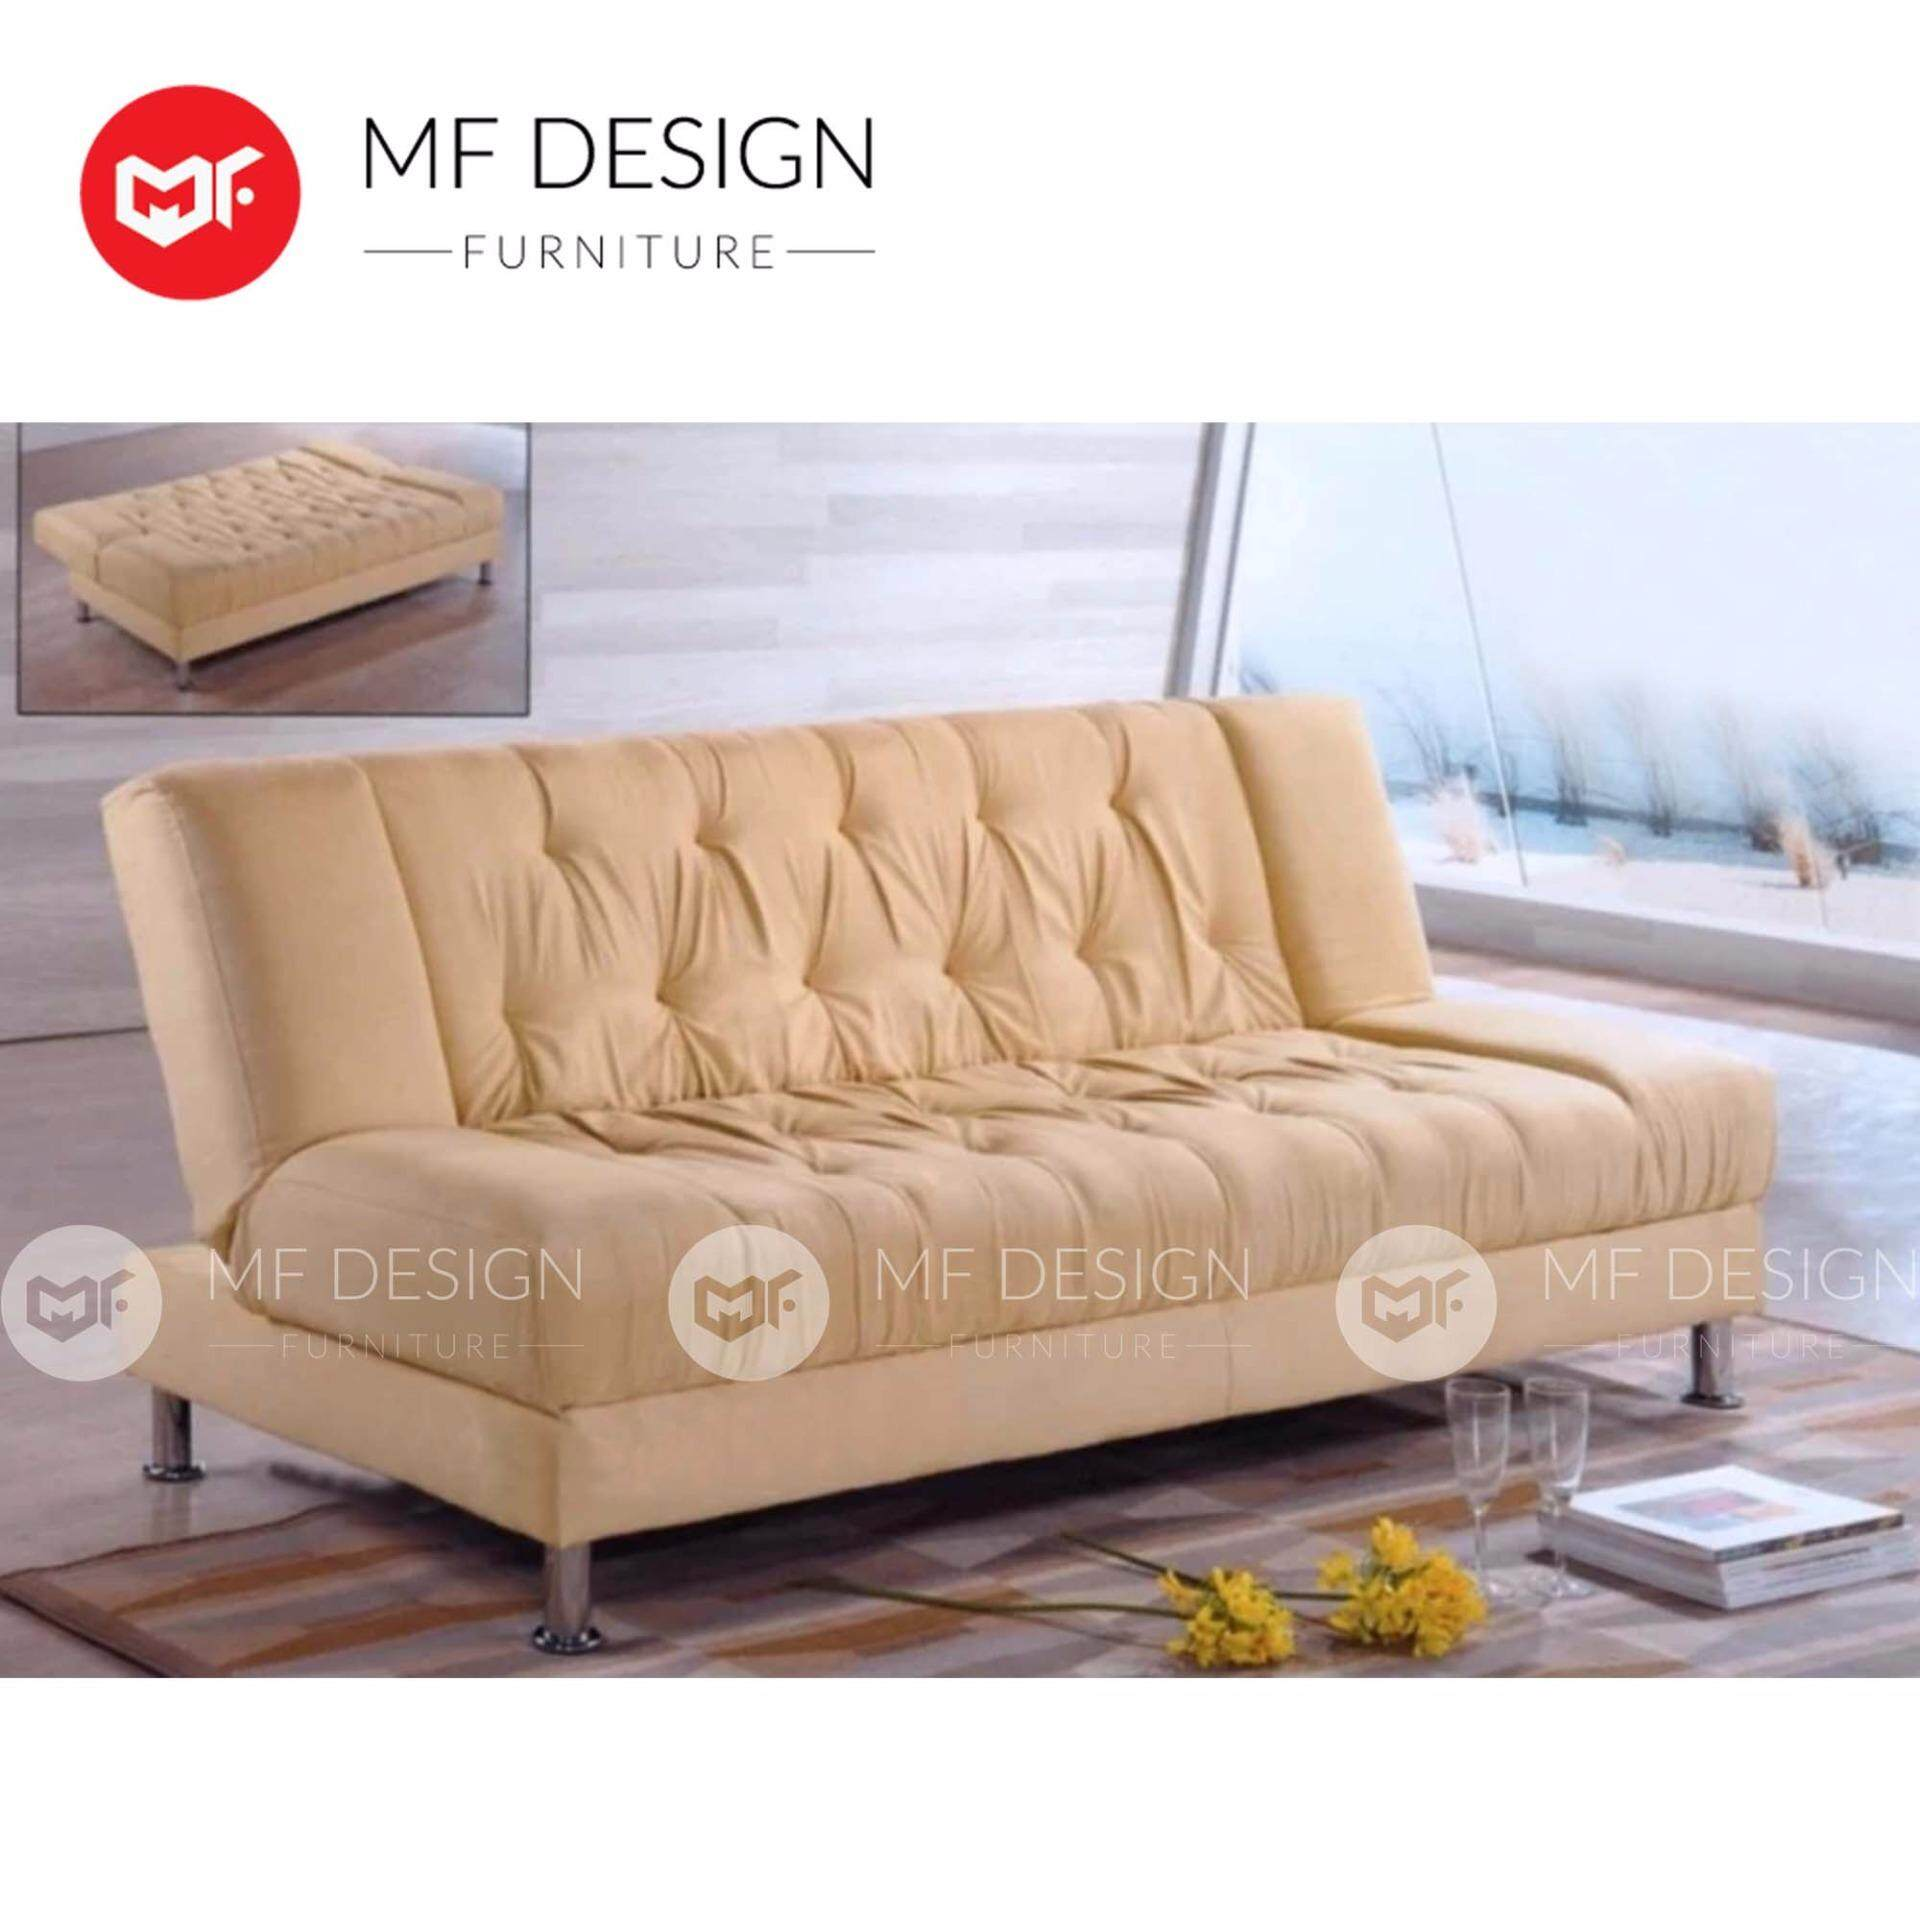 Harga sofa bed di lazada for Sofa bed lazada